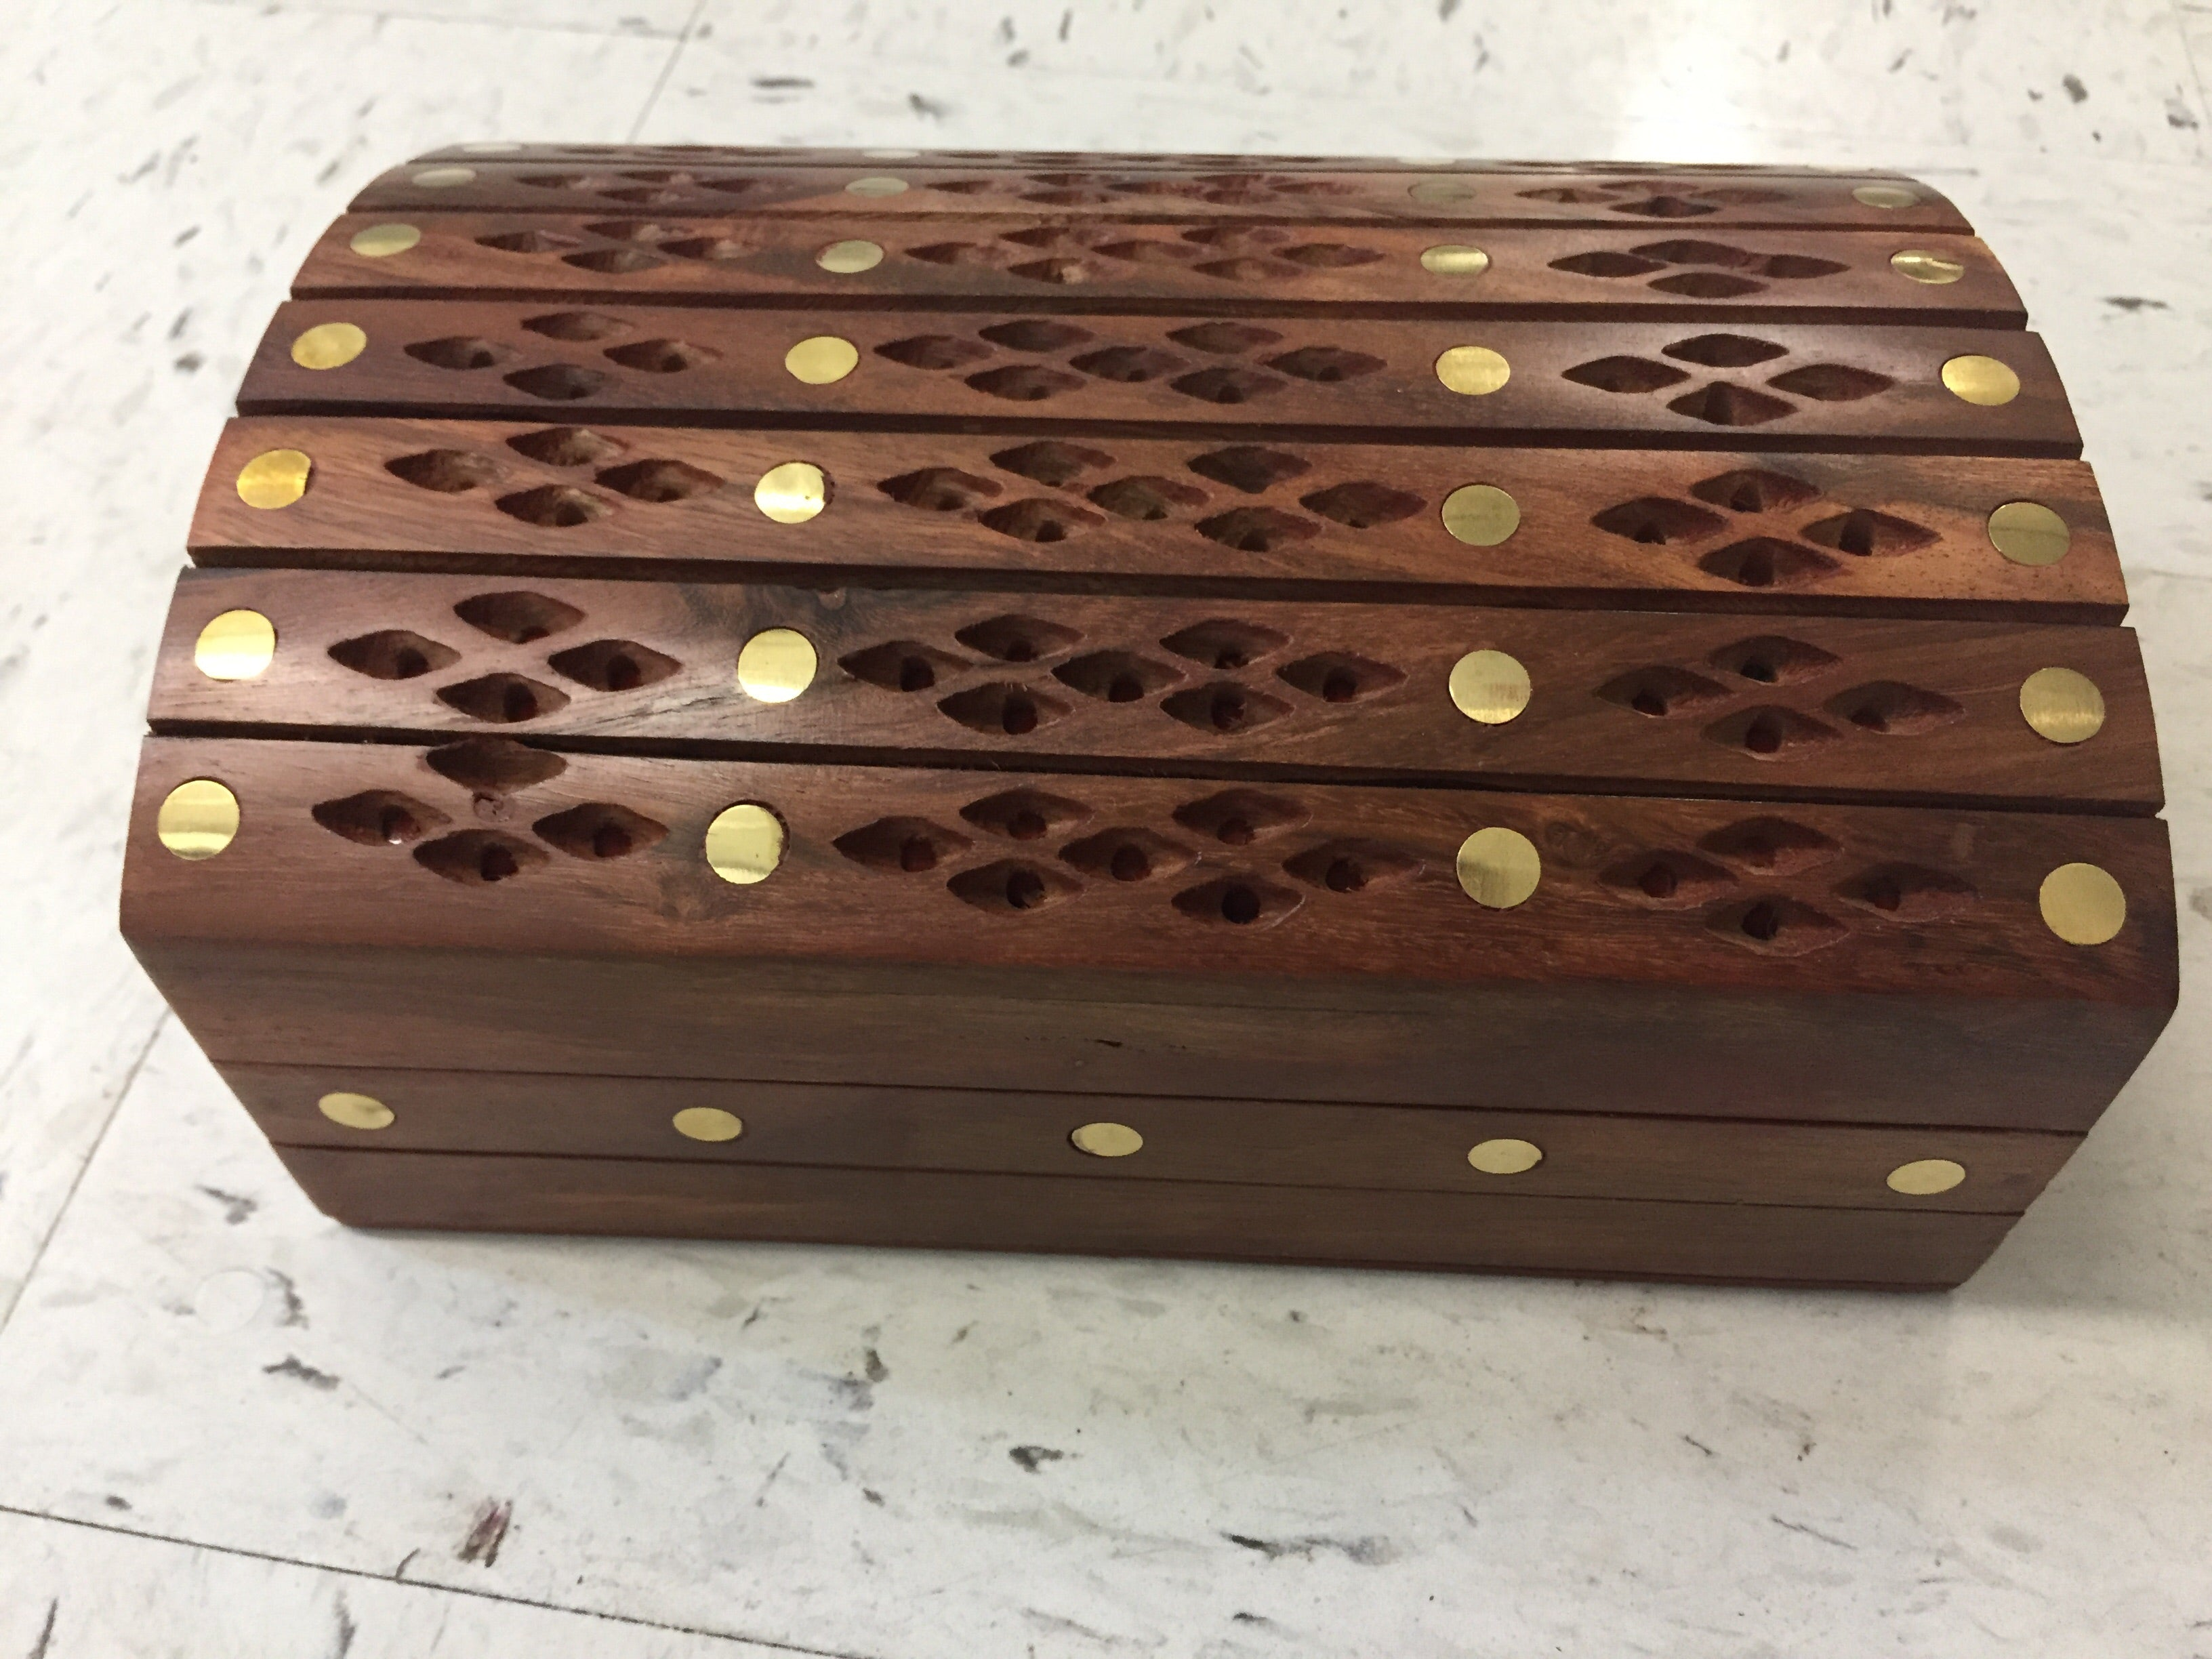 Girls 3 In 1 Jewelry Box Single Compartment Solid Wooden Floral Design Islamichandicrafts Com